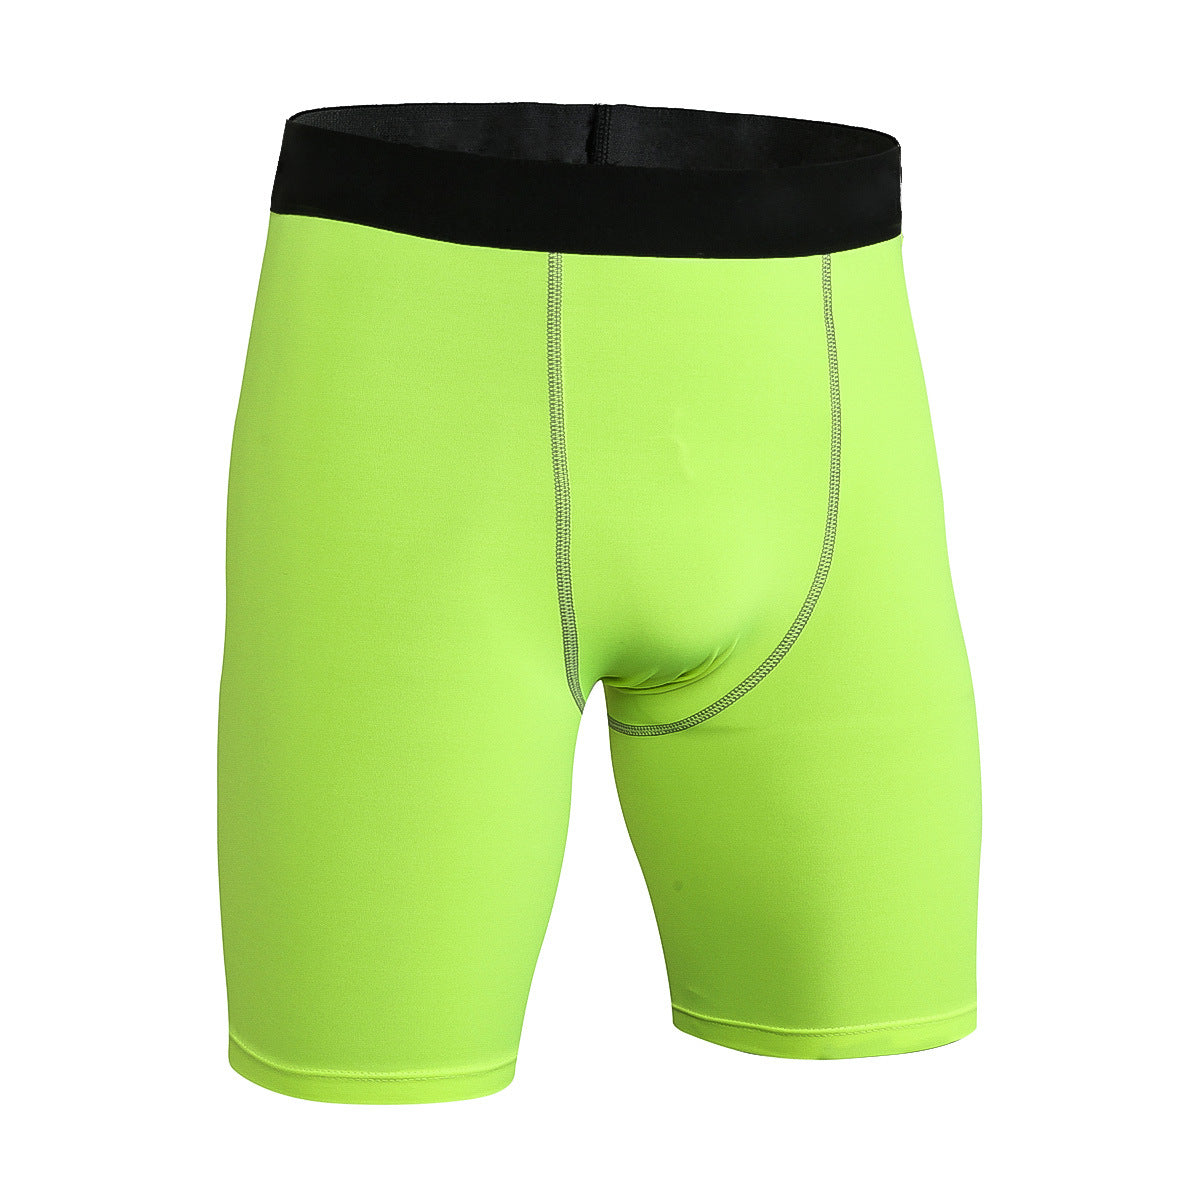 Fitness Tight PRO Men's Sportswear Shorts